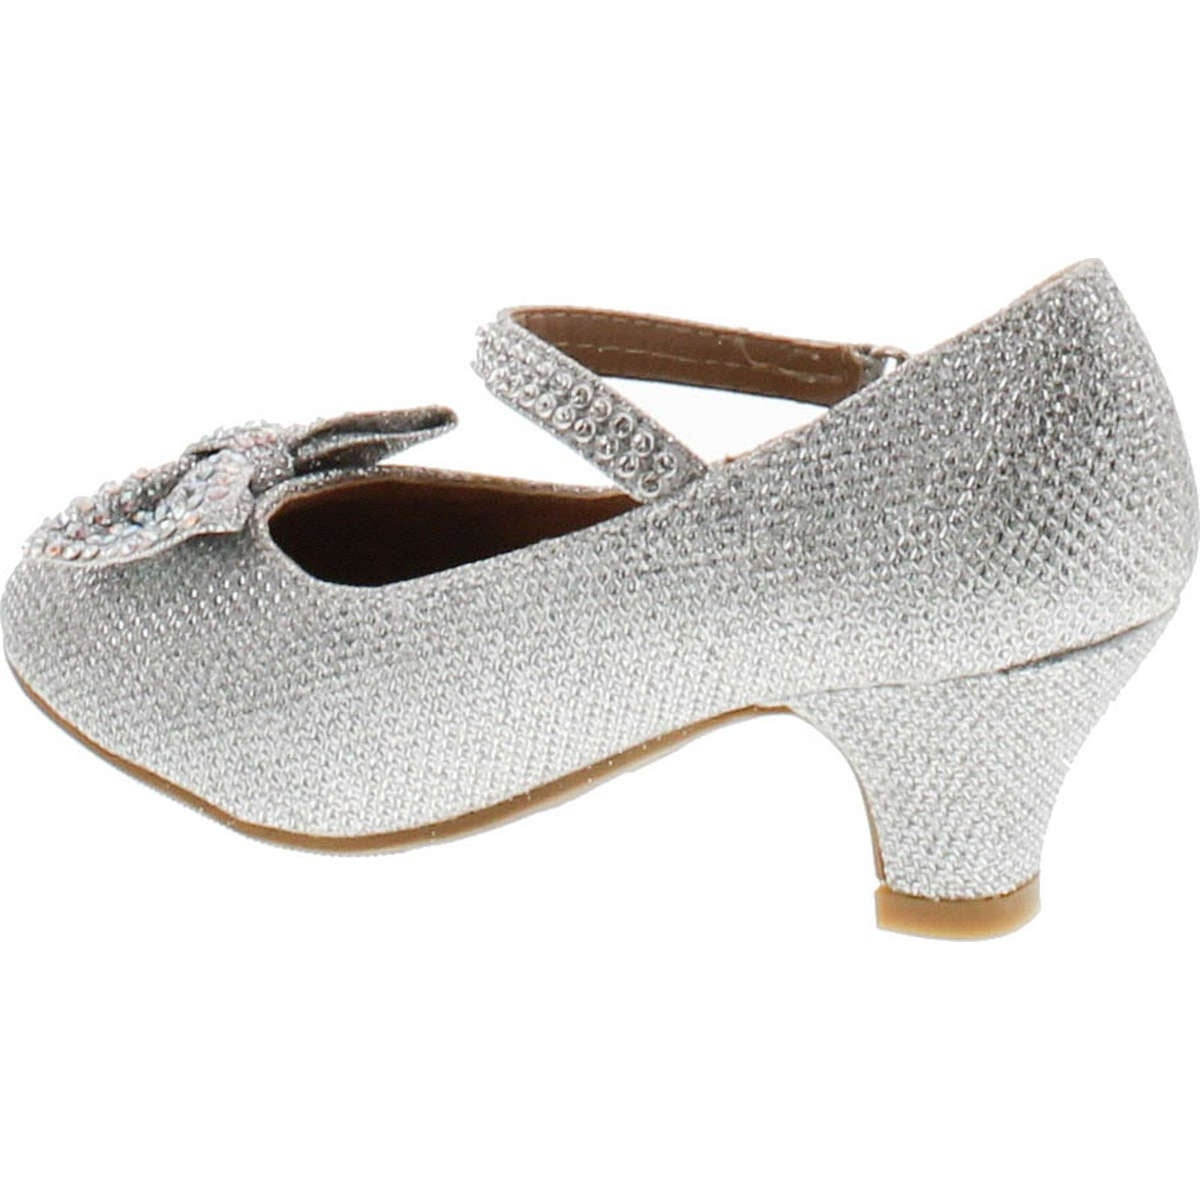 2417c194cb1a Shop Link Justice-05K Girls Peagent Ball Party Wedding Medium Height Dress  Heels - Silver - Free Shipping On Orders Over  45 - Overstock - 14756531